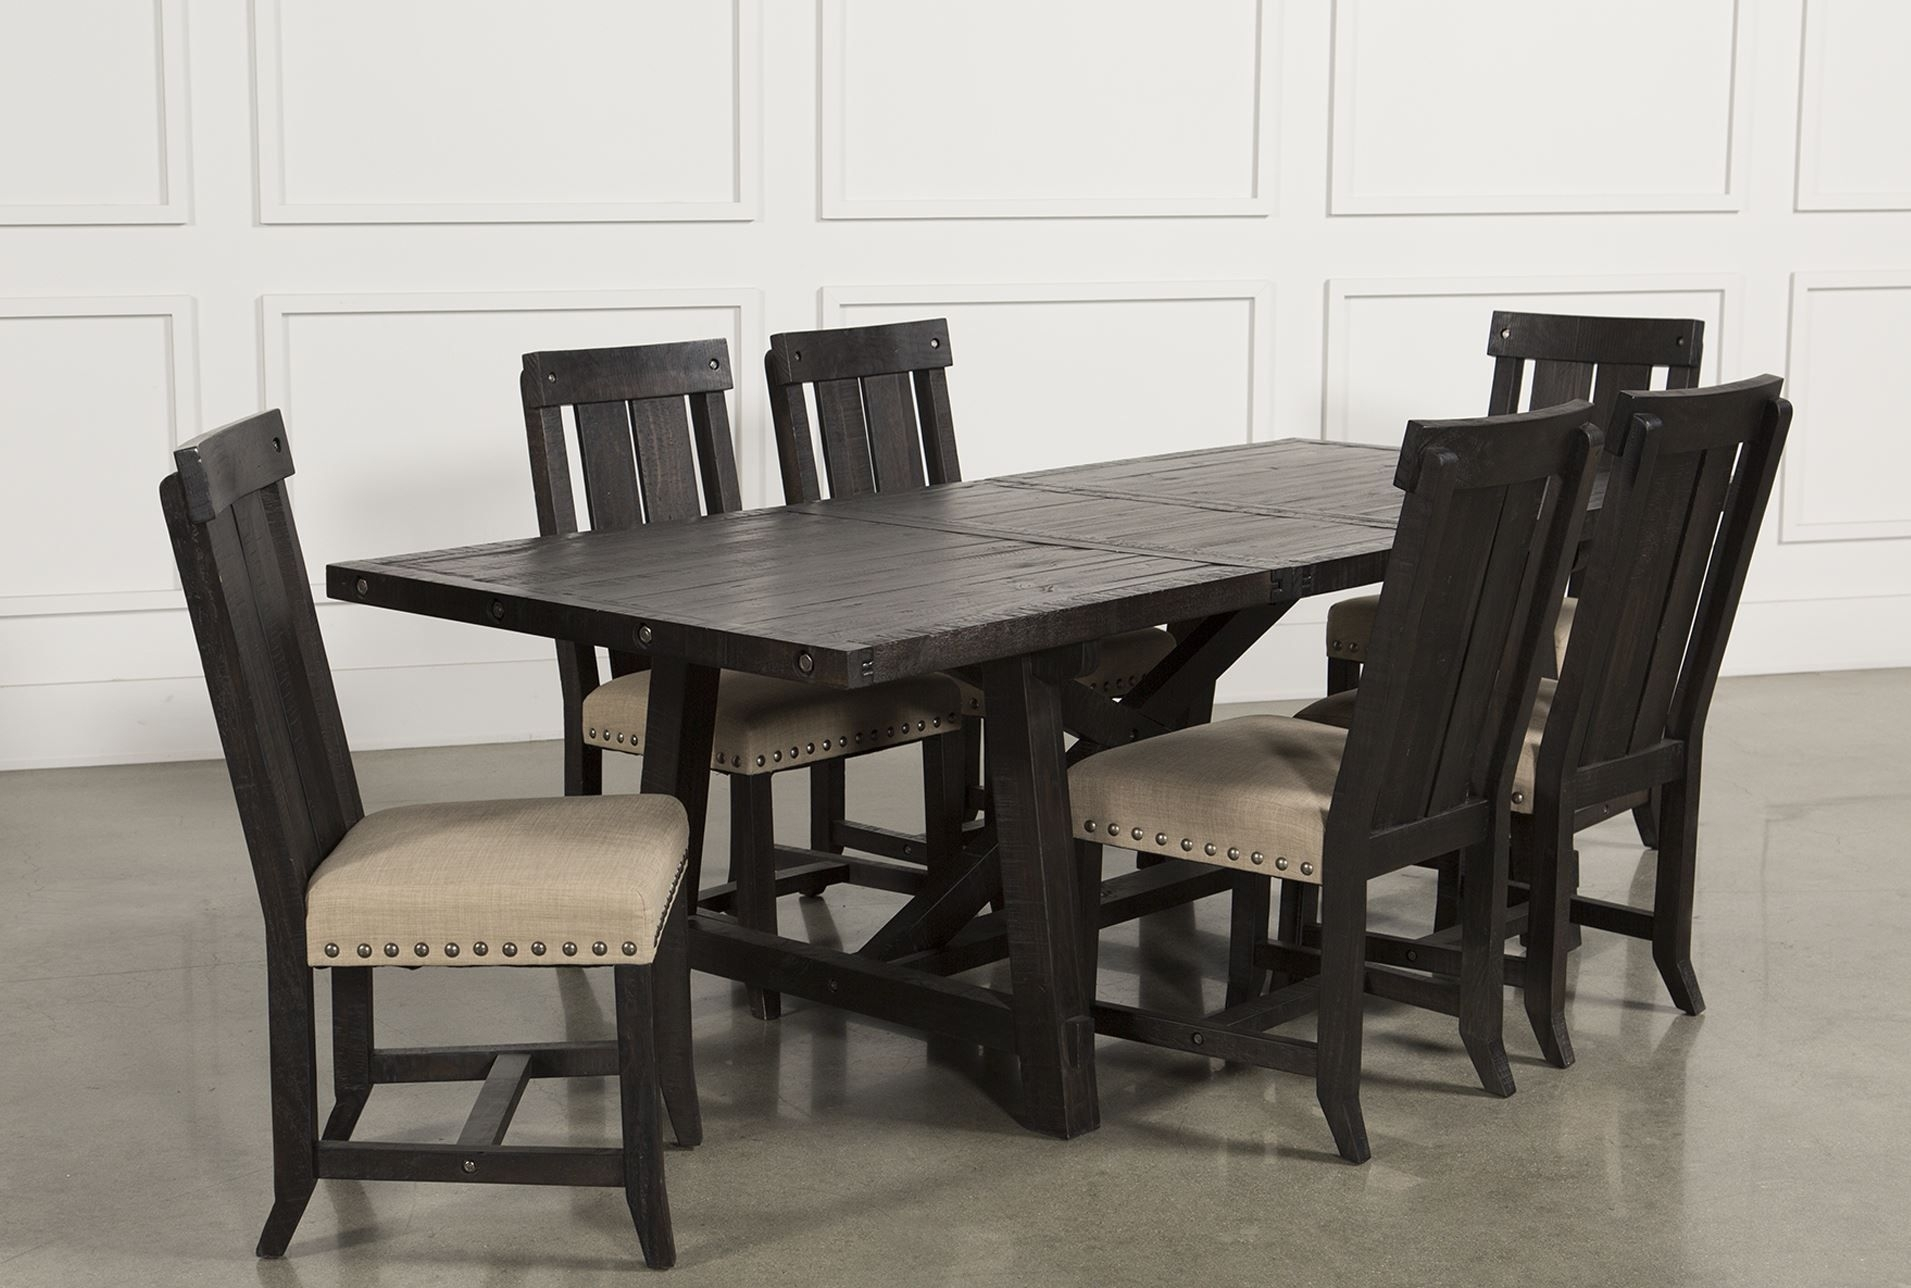 Jaxon 7 Piece Rectangle Dining Set W/wood Chairs | Home, Future Home In Recent Partridge 7 Piece Dining Sets (Image 10 of 20)